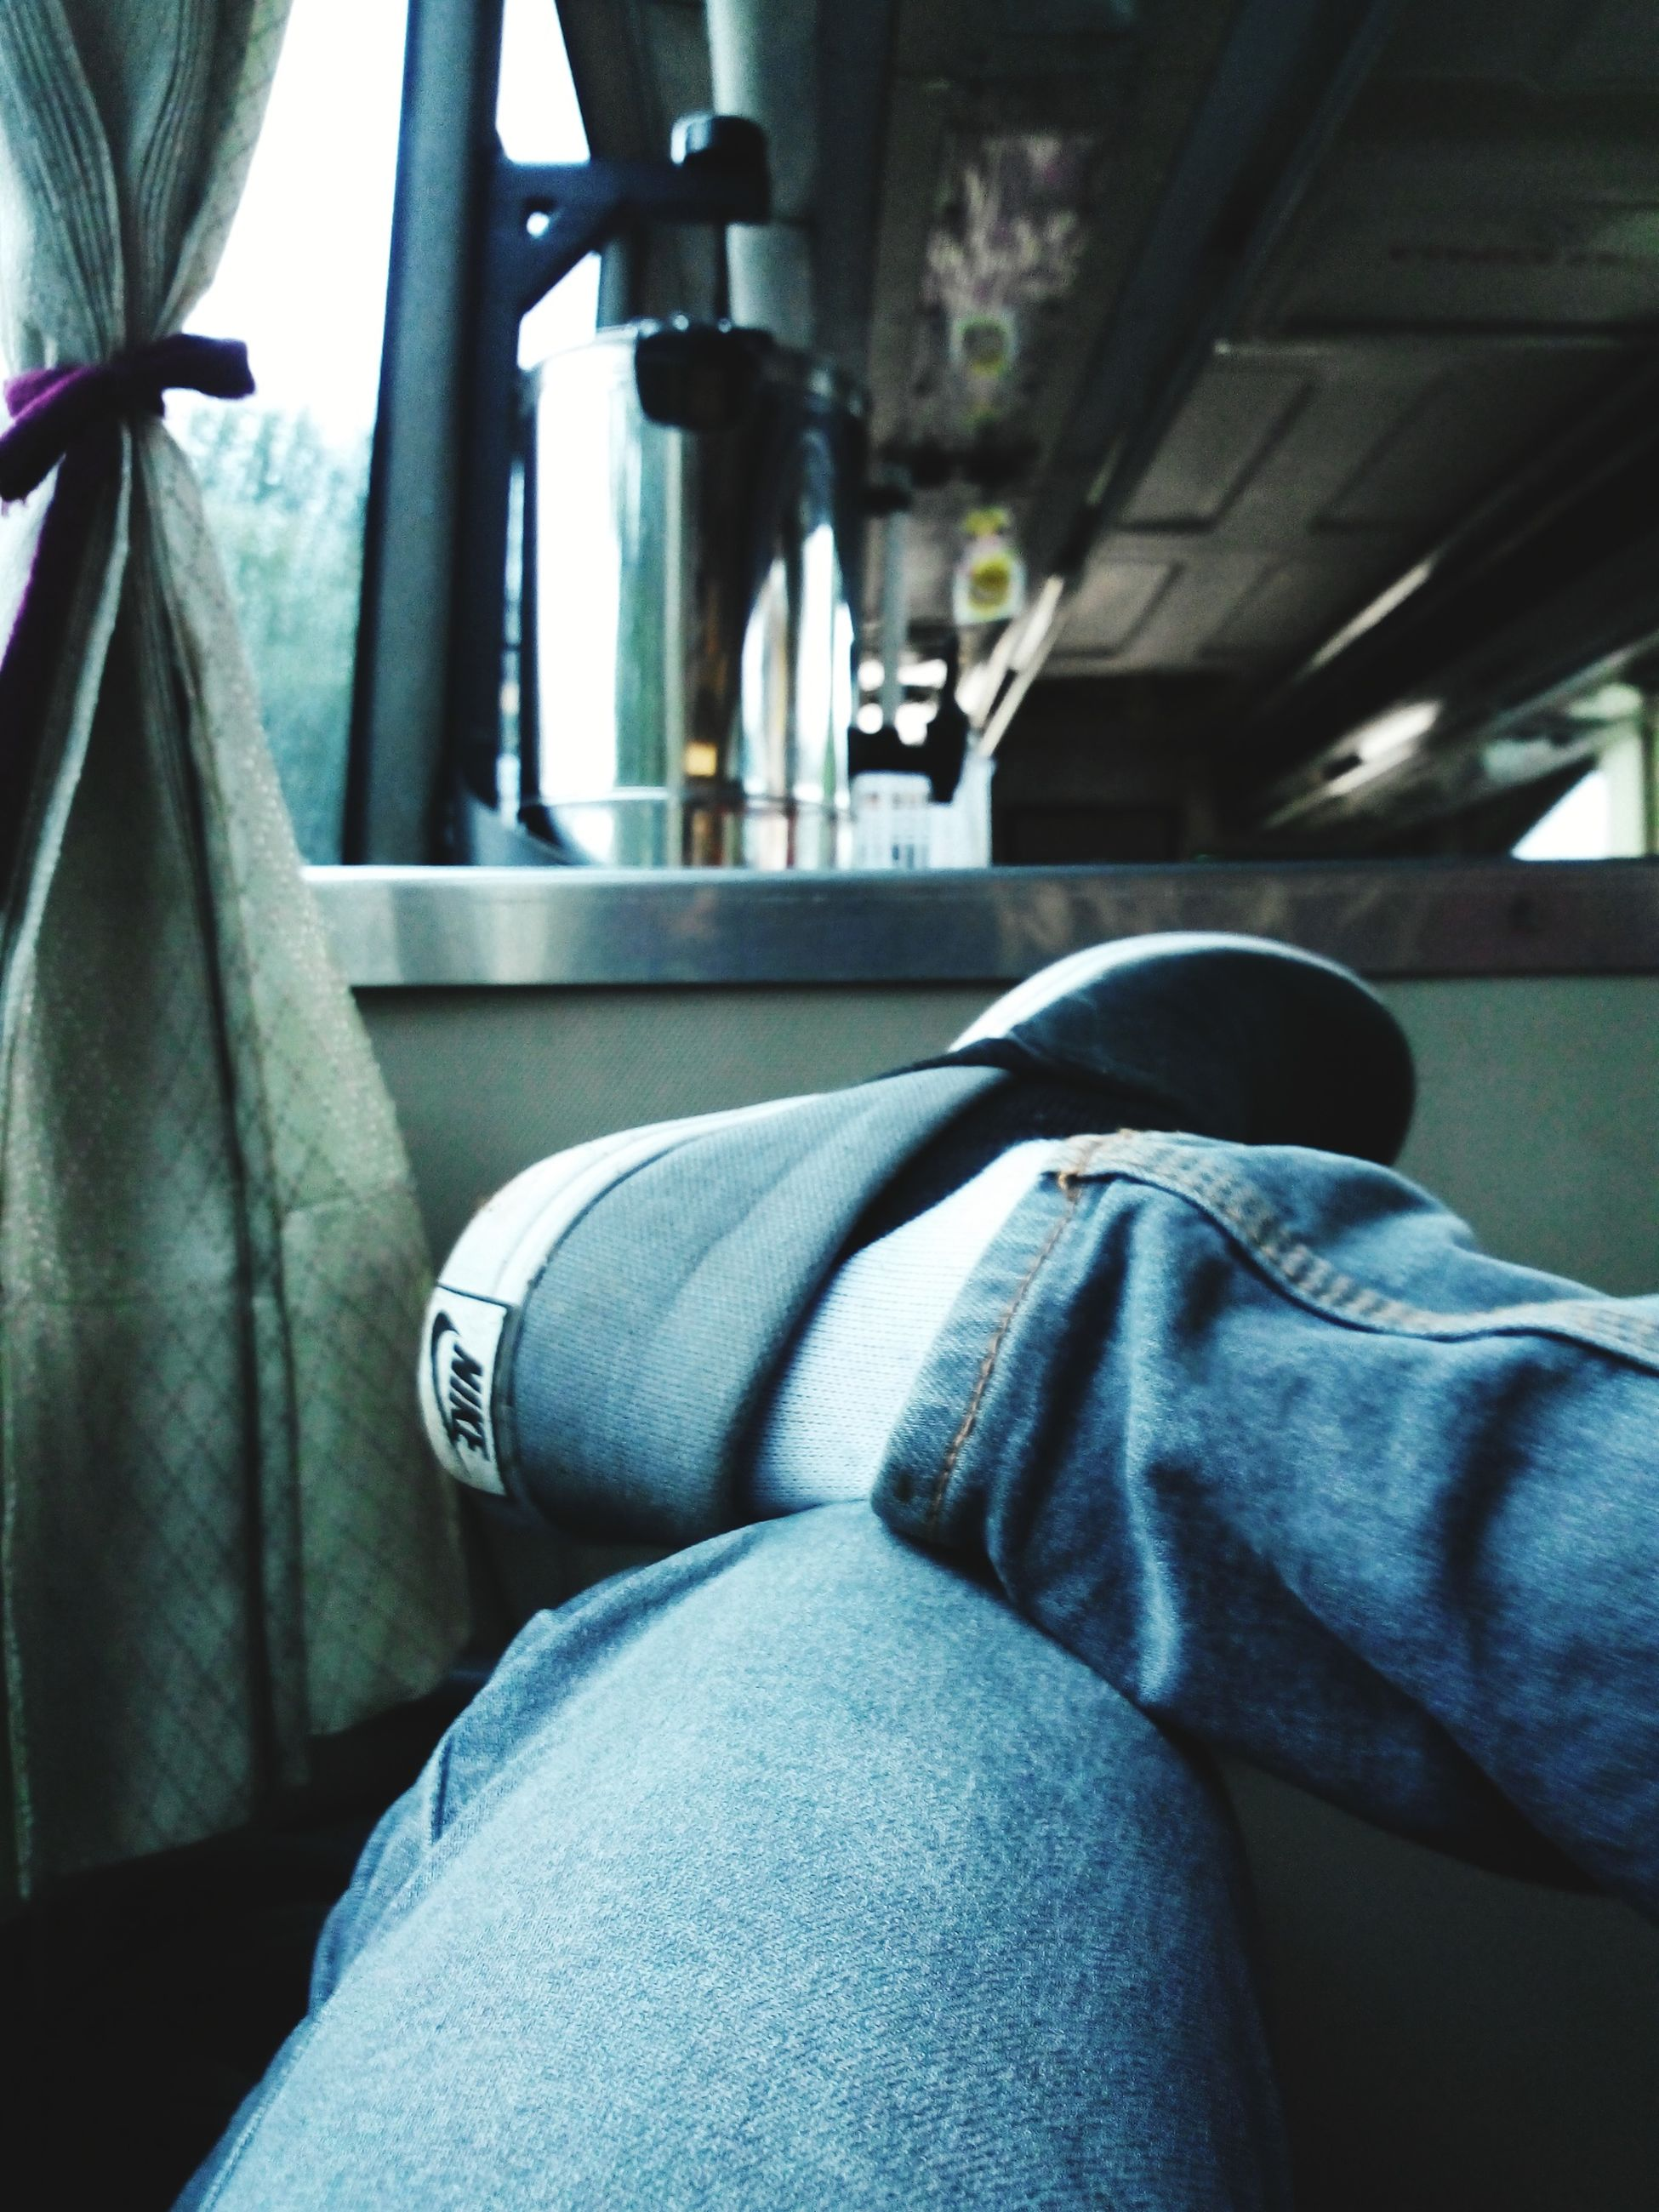 indoors, window, vehicle interior, vehicle seat, transportation, men, sitting, glass - material, lifestyles, jeans, casual clothing, train - vehicle, rear view, mode of transport, transparent, public transportation, low section, home interior